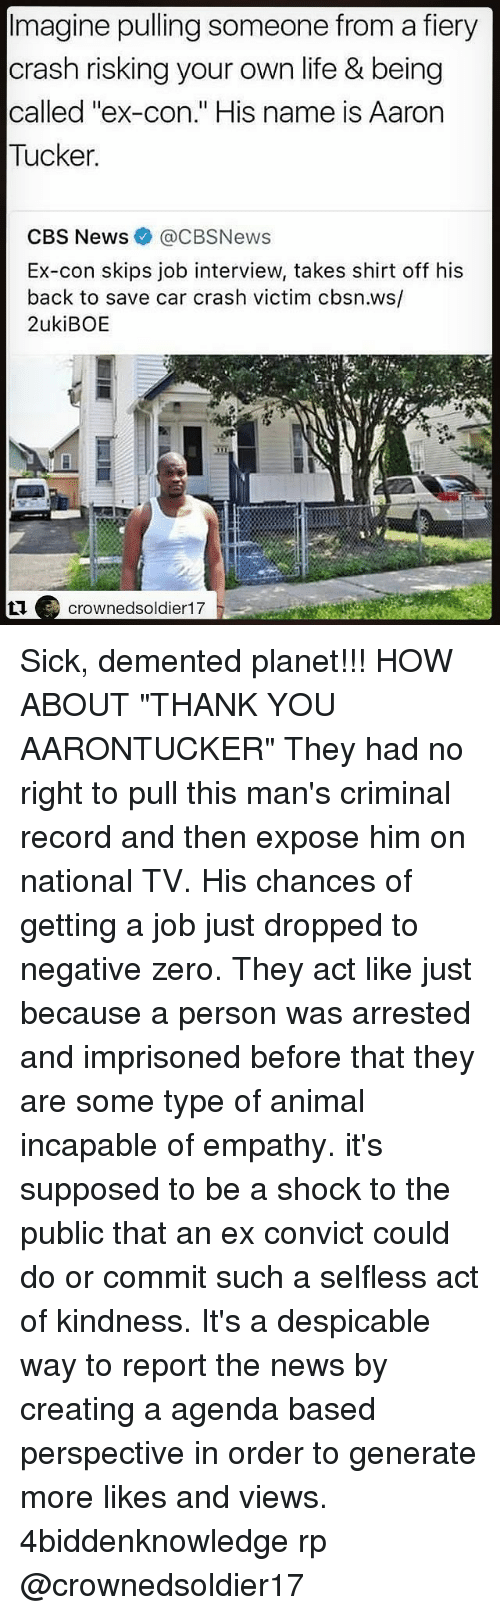 """Jobbing: Imagine pulling someone from a fiery  crash risking your own life & being  called """"ex-con."""" His name is Aarorn  Tucker  CBS News@CBSNews  Ex-con skips job interview, takes shirt off his  back to save car crash victim cbsn.ws/  2ukiBOE  crownedsoldier17 Sick, demented planet!!! HOW ABOUT """"THANK YOU AARONTUCKER"""" They had no right to pull this man's criminal record and then expose him on national TV. His chances of getting a job just dropped to negative zero. They act like just because a person was arrested and imprisoned before that they are some type of animal incapable of empathy. it's supposed to be a shock to the public that an ex convict could do or commit such a selfless act of kindness. It's a despicable way to report the news by creating a agenda based perspective in order to generate more likes and views. 4biddenknowledge rp @crownedsoldier17"""